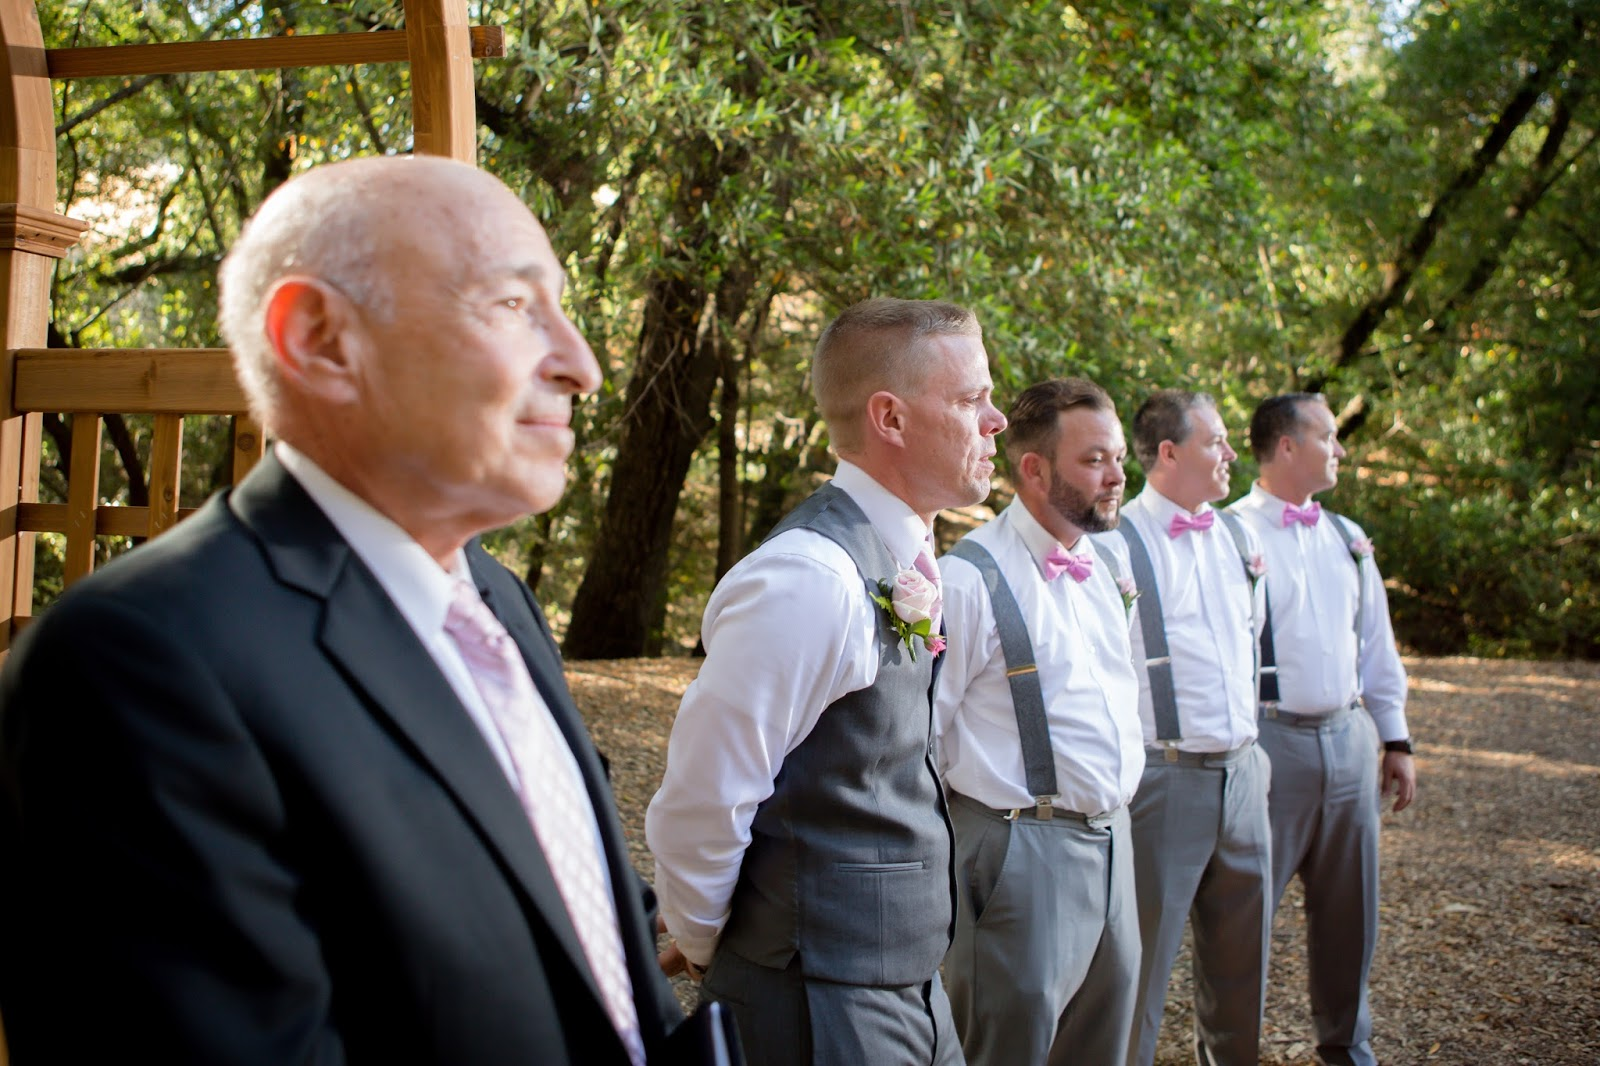 groomsman waiting at the alter